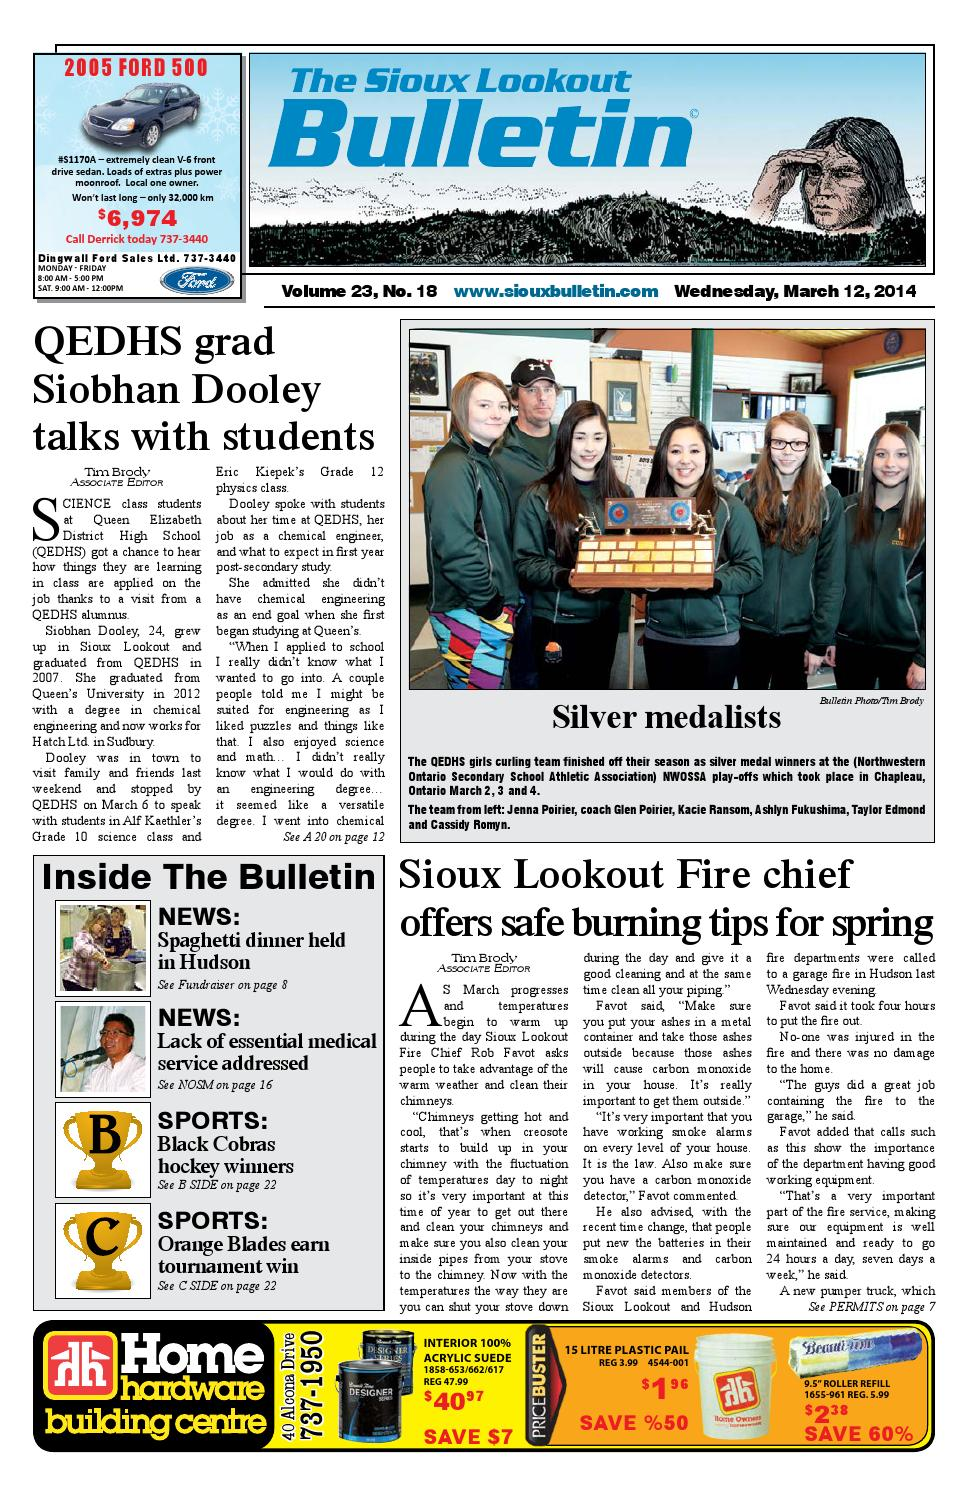 The Sioux Lookout Bulletin - Vol. 23 - No. 18 - March 12, 2014 by The Sioux  Lookout Bulletin - issuu